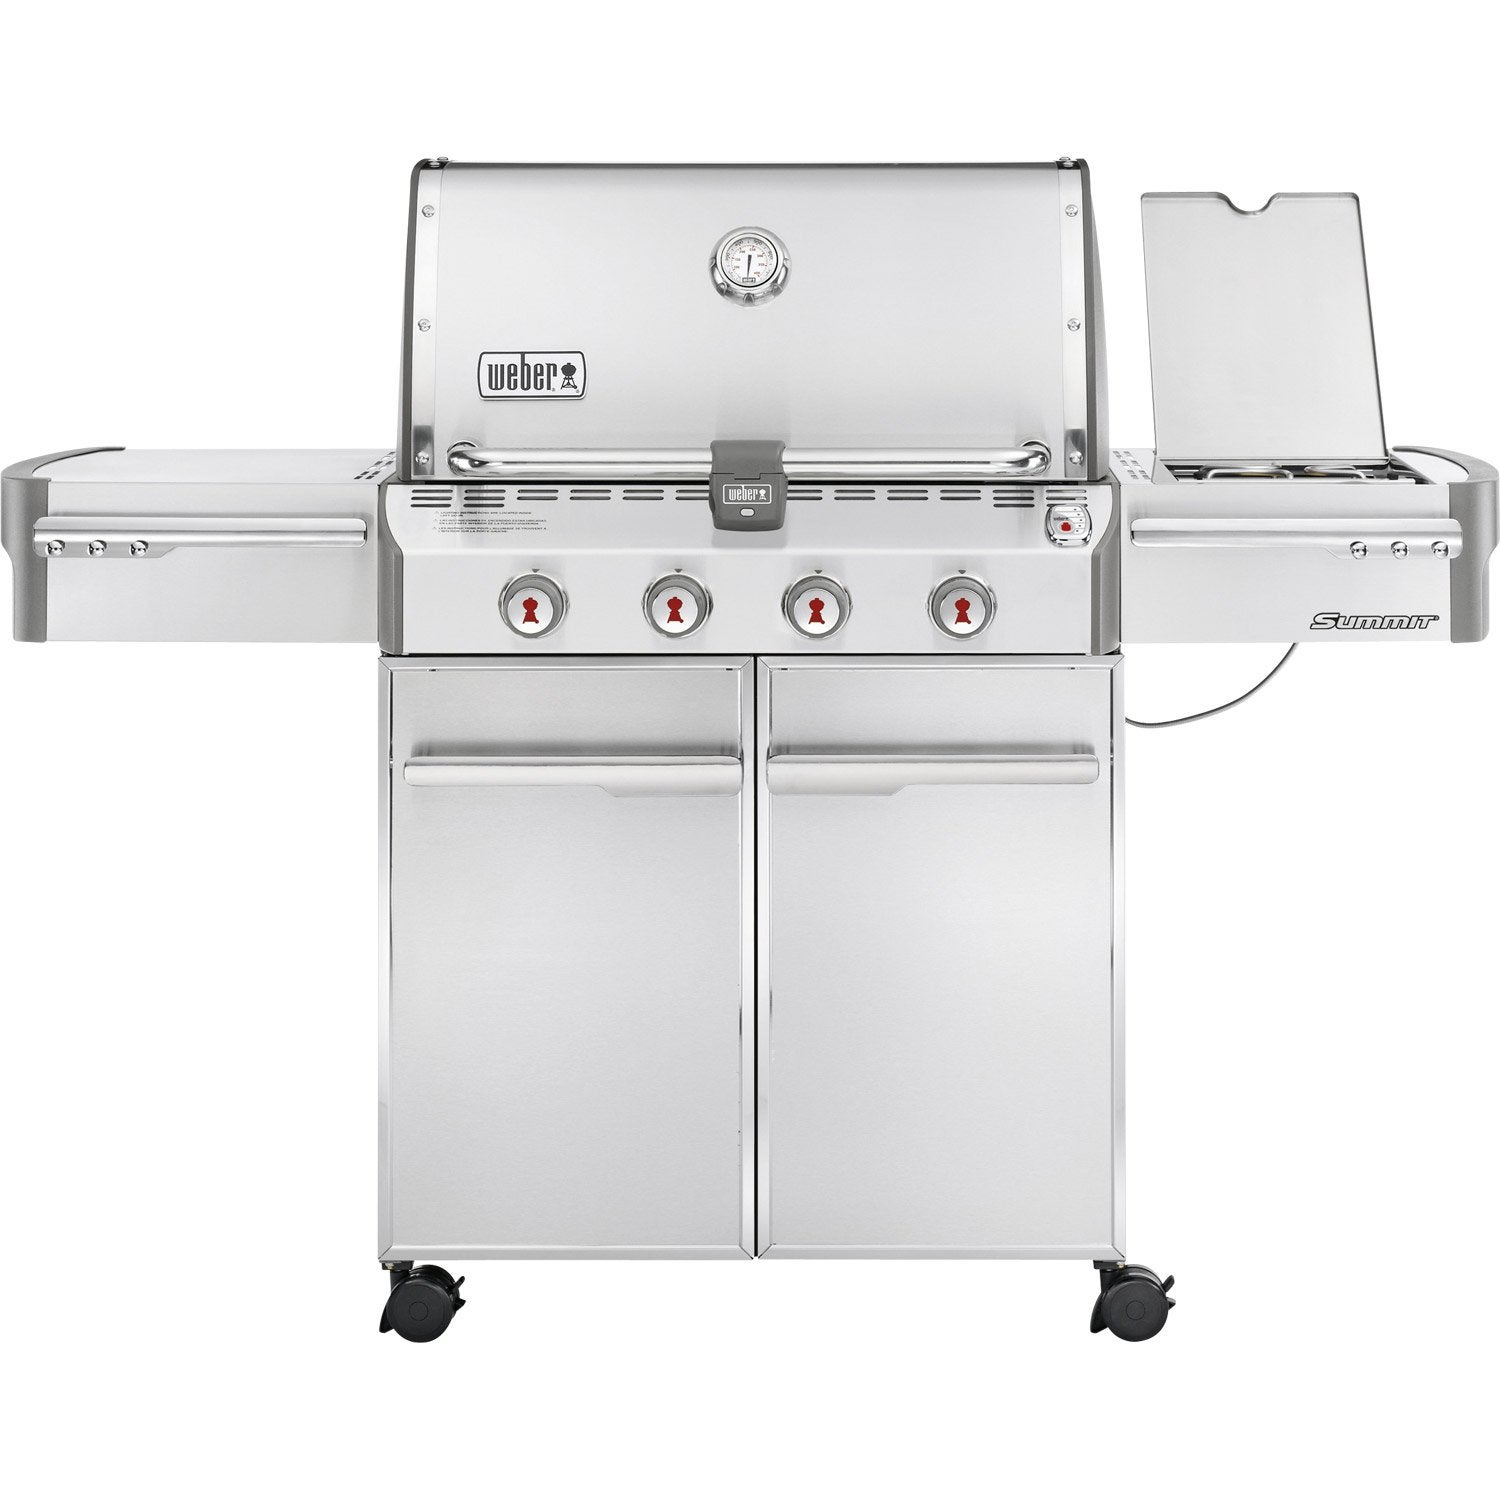 Barbecue au gaz weber summit 4 bruleurs leroy merlin for Barbecue a gaz leroy merlin